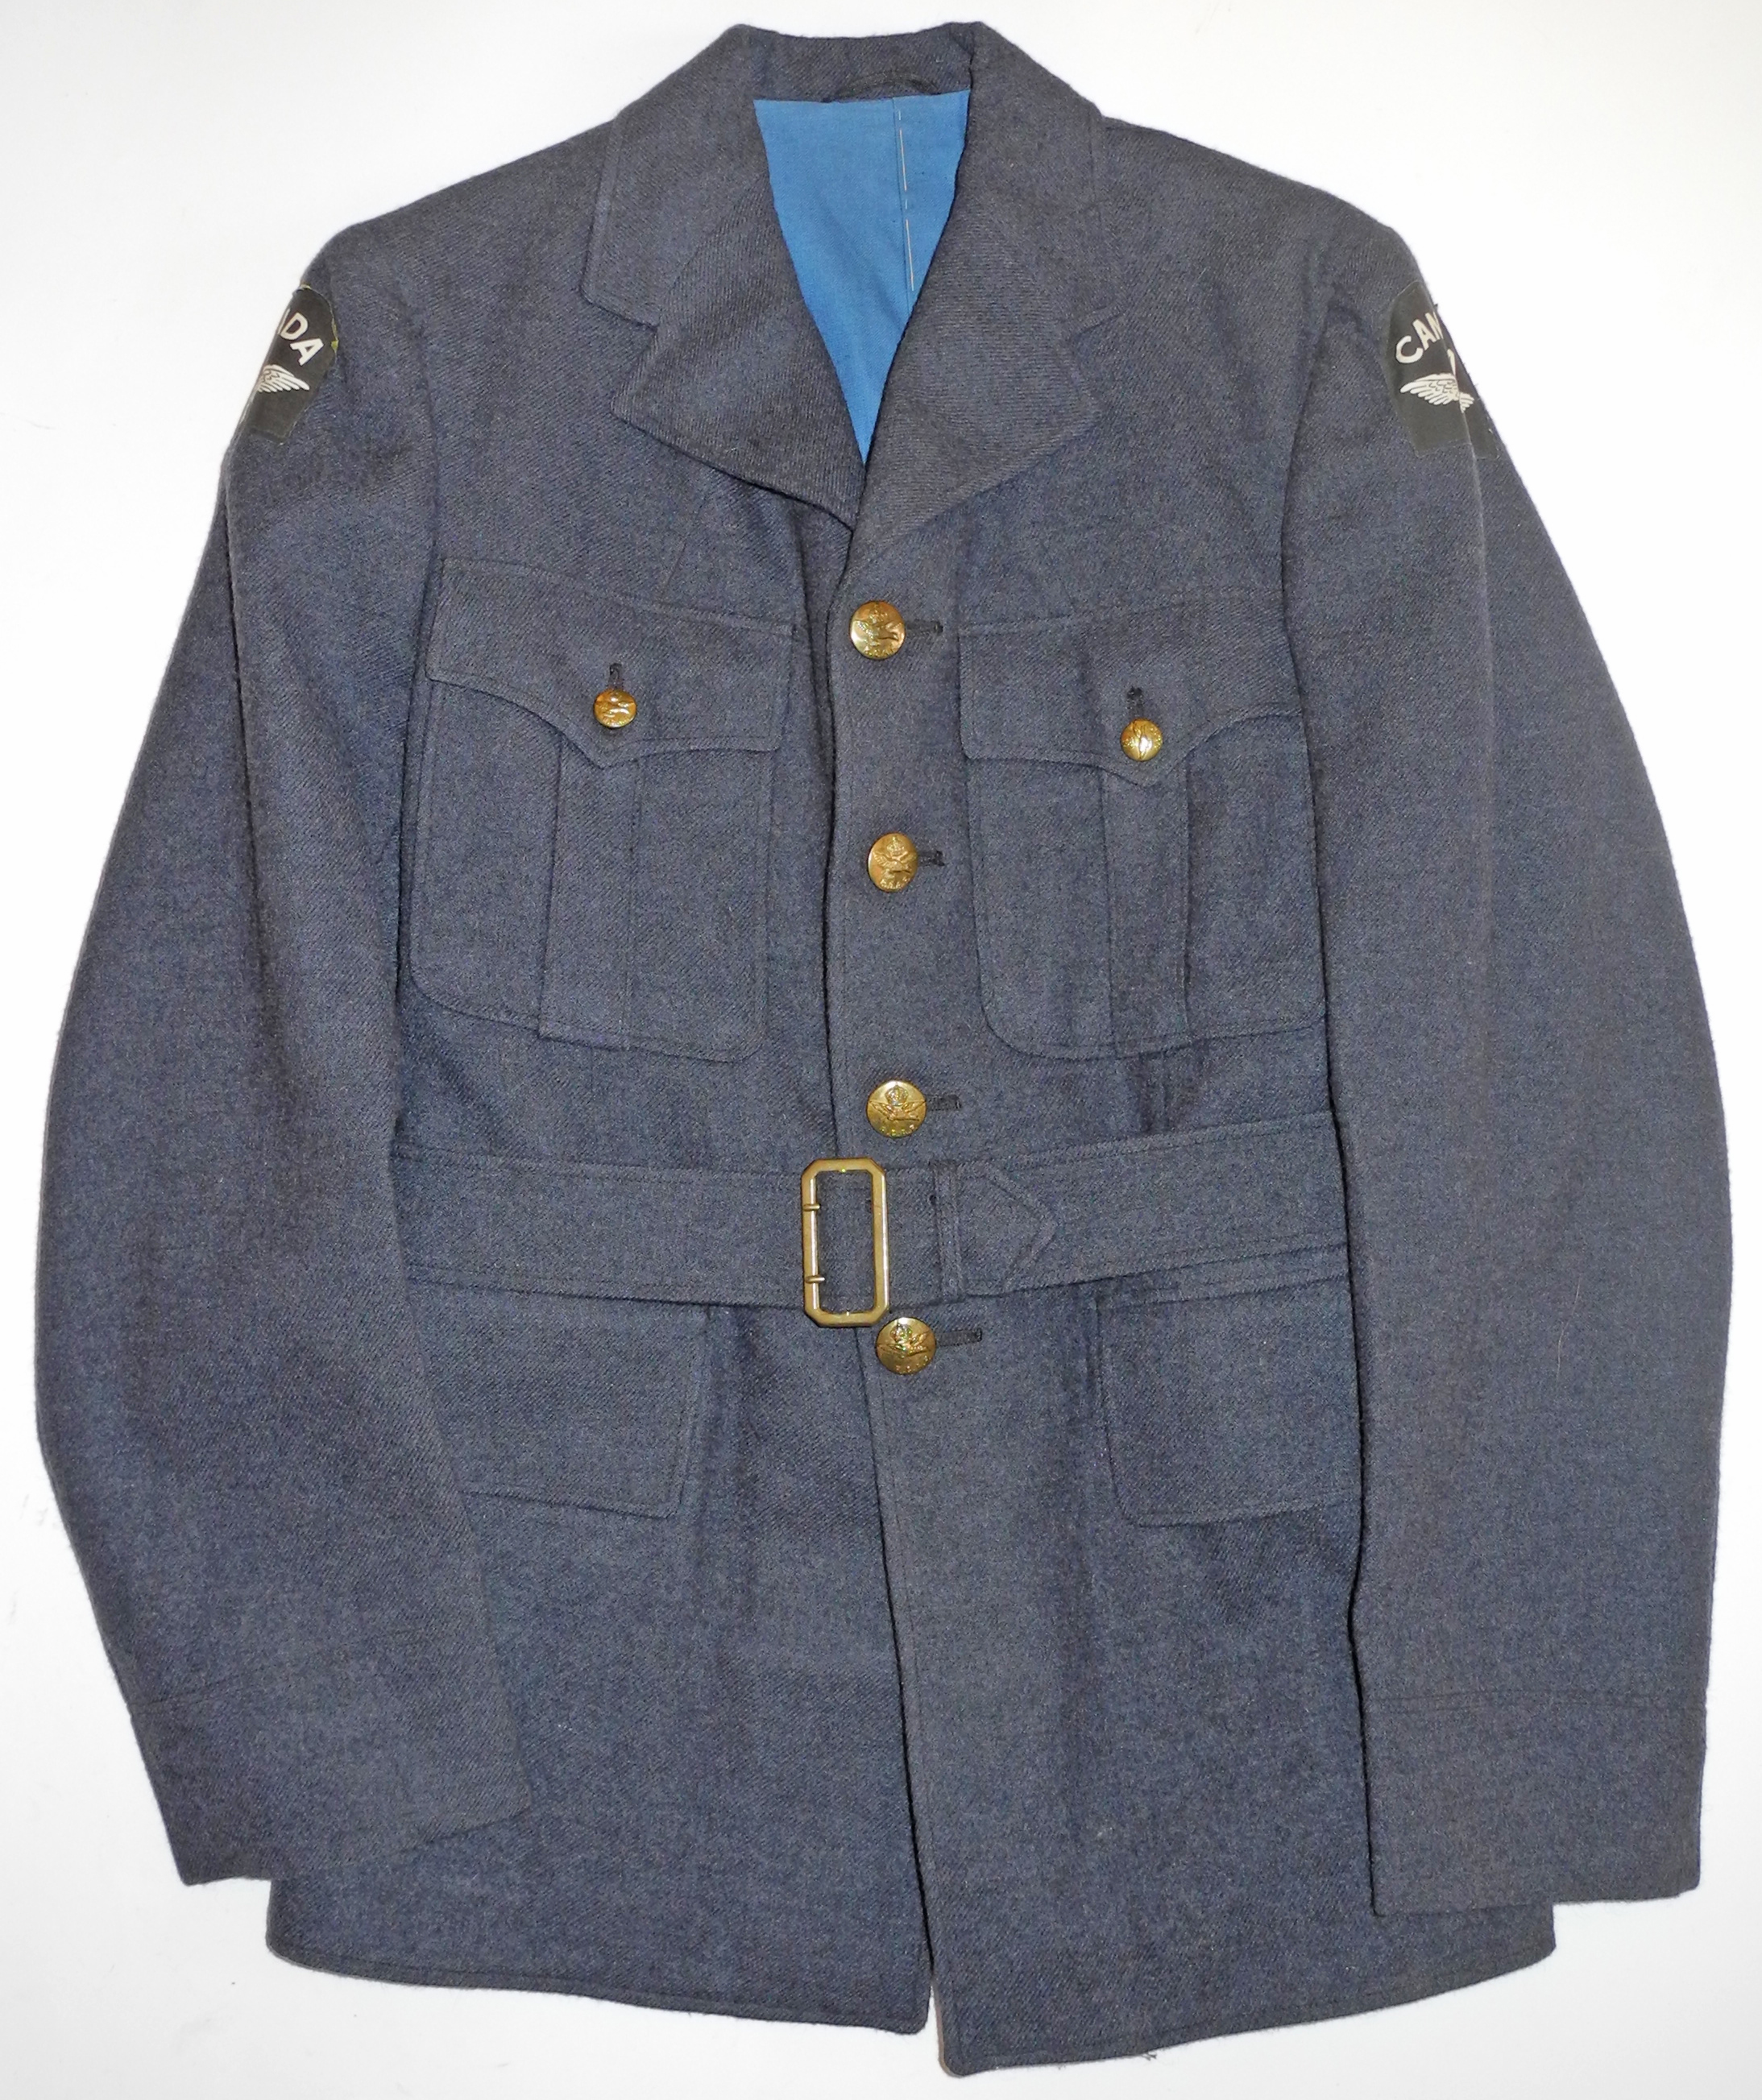 RCAF Other Ranks tunic dated 1942